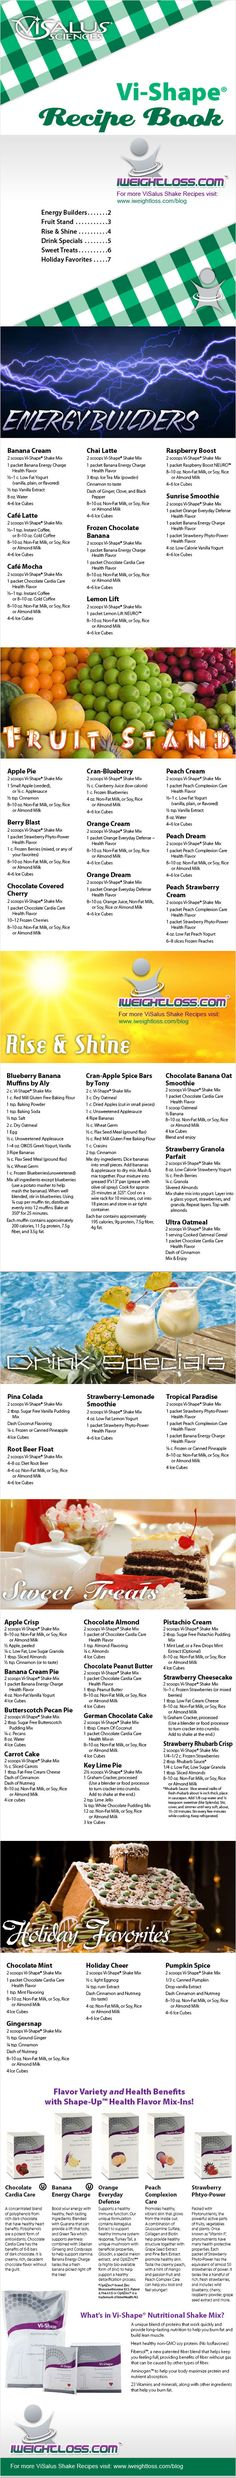 ViSalus Shakes Recipe Book | ViSalus Body by Vi™ News and Updates